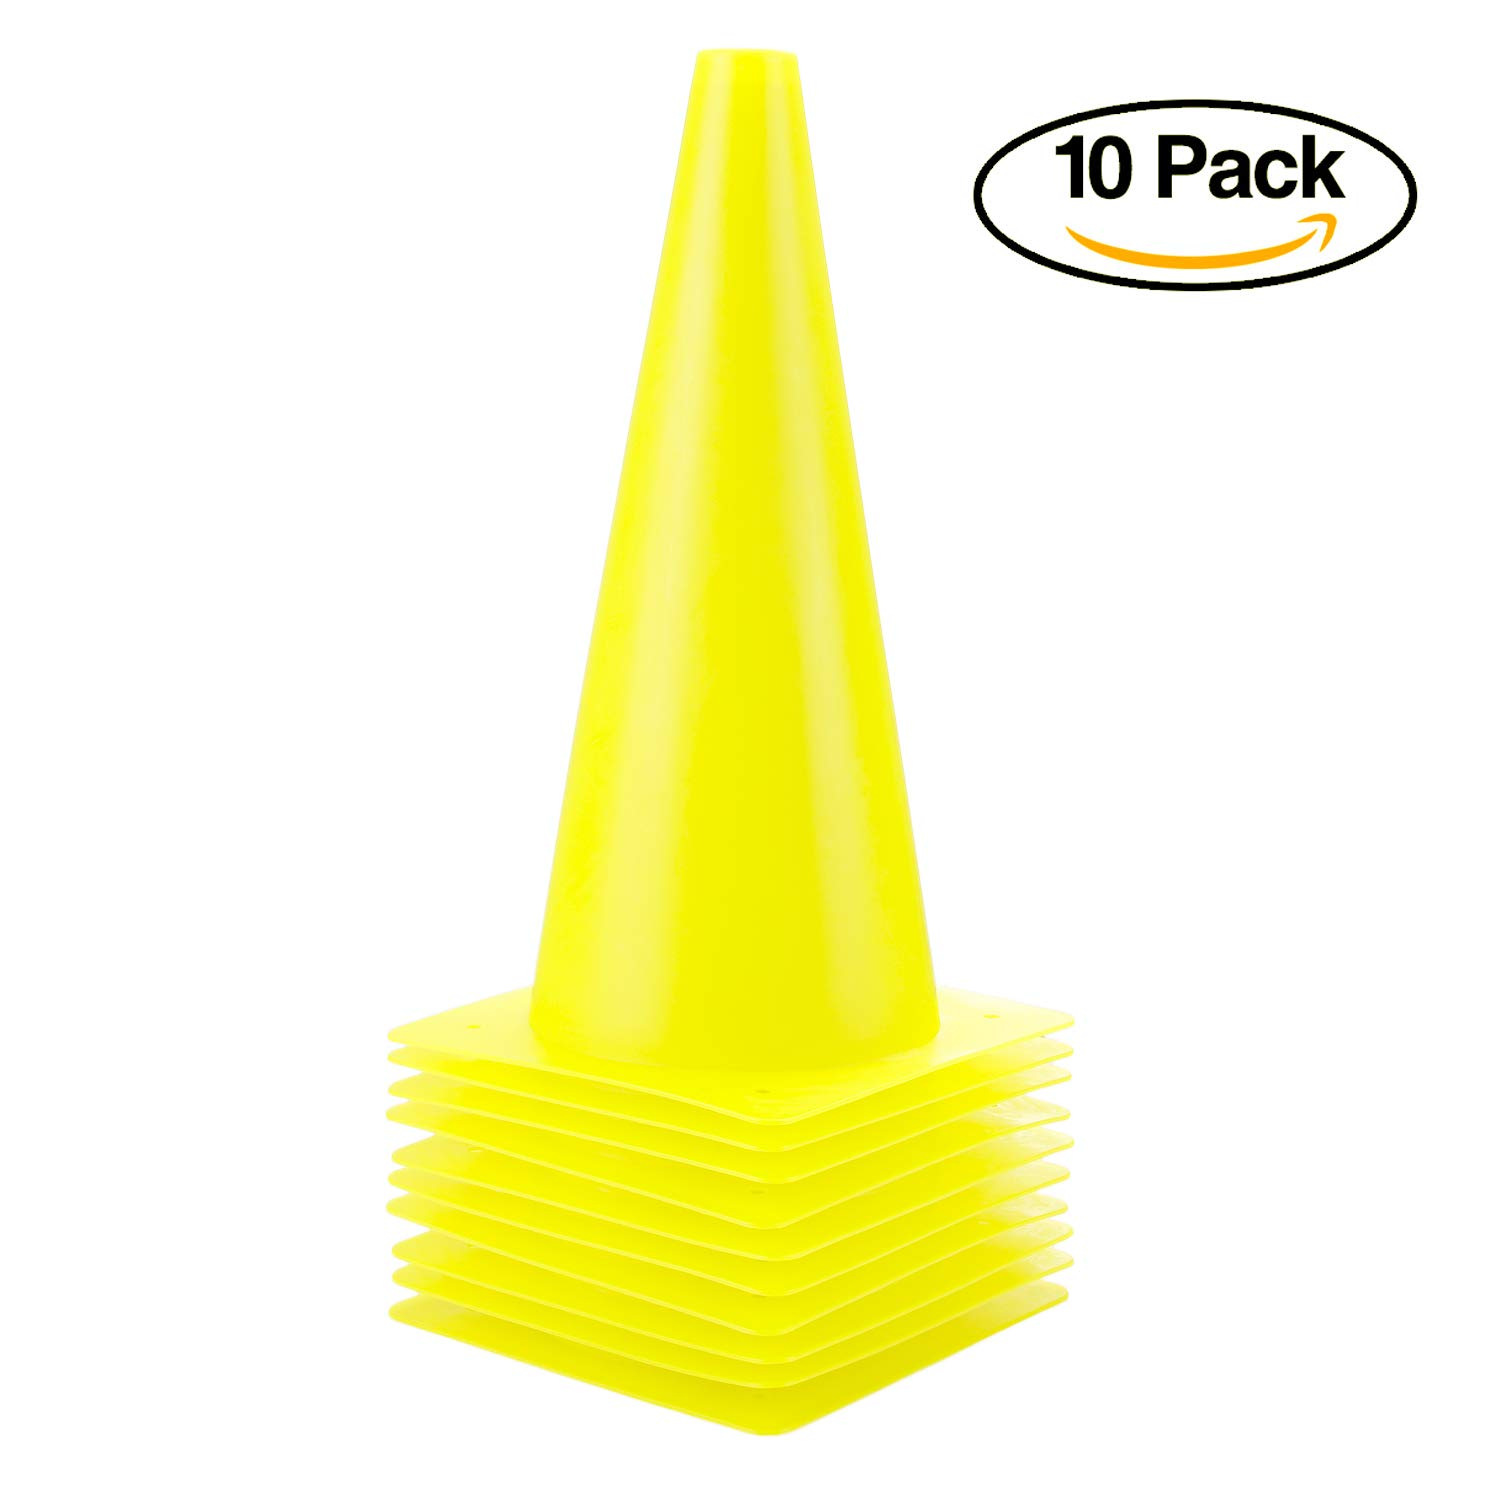 12 inch Traffic Cones – 10 Pack of Field Marker Cones for Outdoor Activity & Festive Events (Yellow) 61qWXbNXUTL